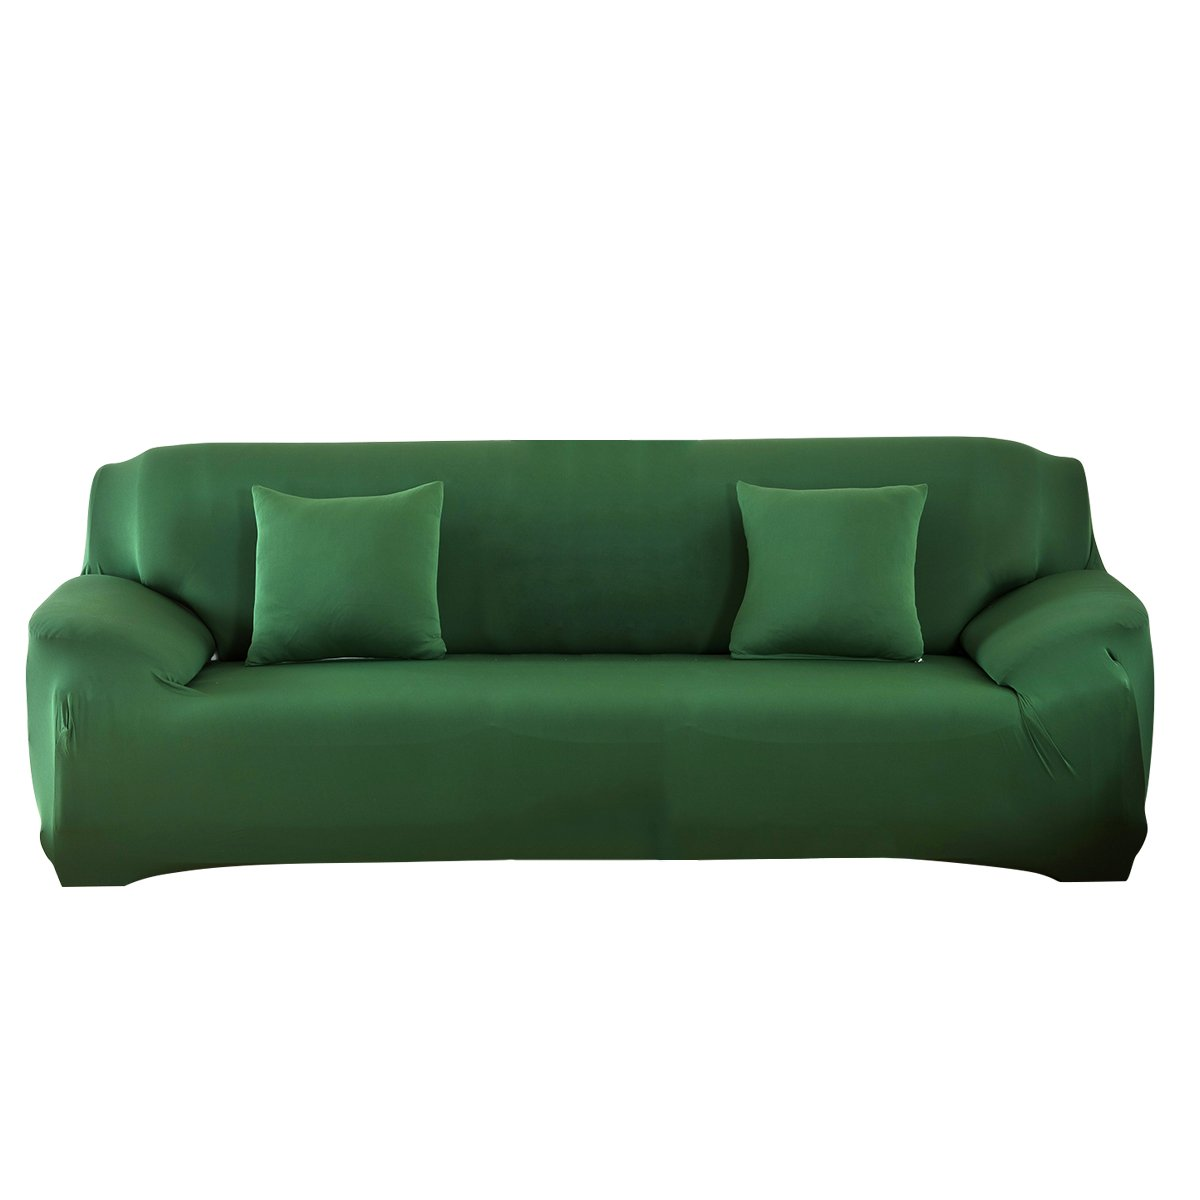 MIFXIN Sofa Cover Couch Cover Slipcover Sofa 3 Seater Furniture Protector Polyester Spandex Fabric Armchair Slipcover a Pillow Cover Children Pets (3 Seater Sofa, Dark Green)